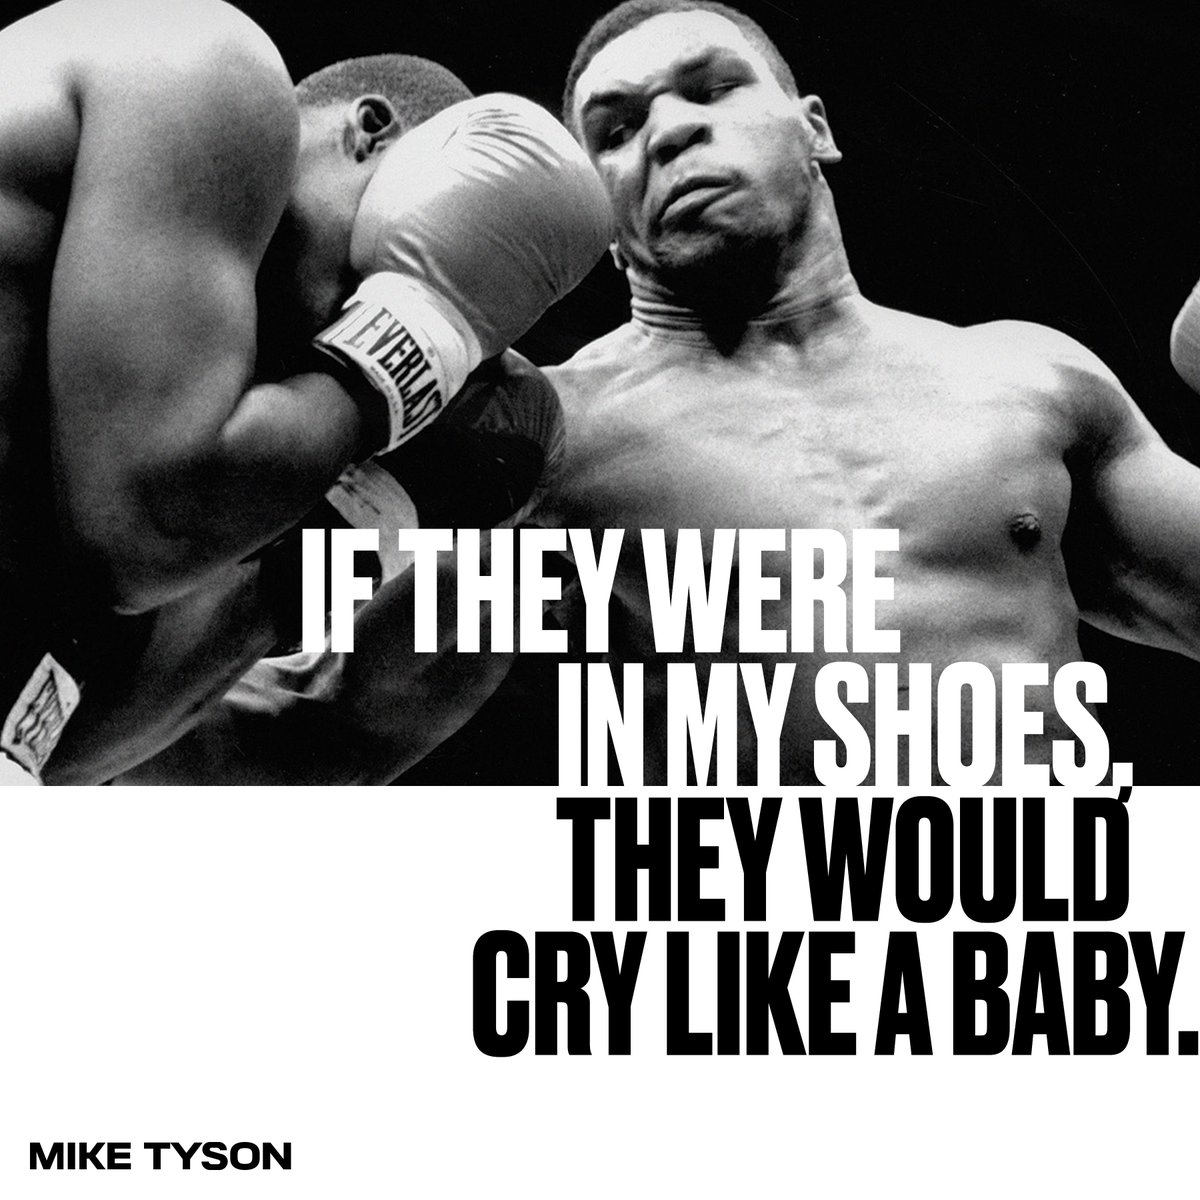 If they were in my shoes, they would cry like a baby. #miketyson https://t.co/douLc2td7U